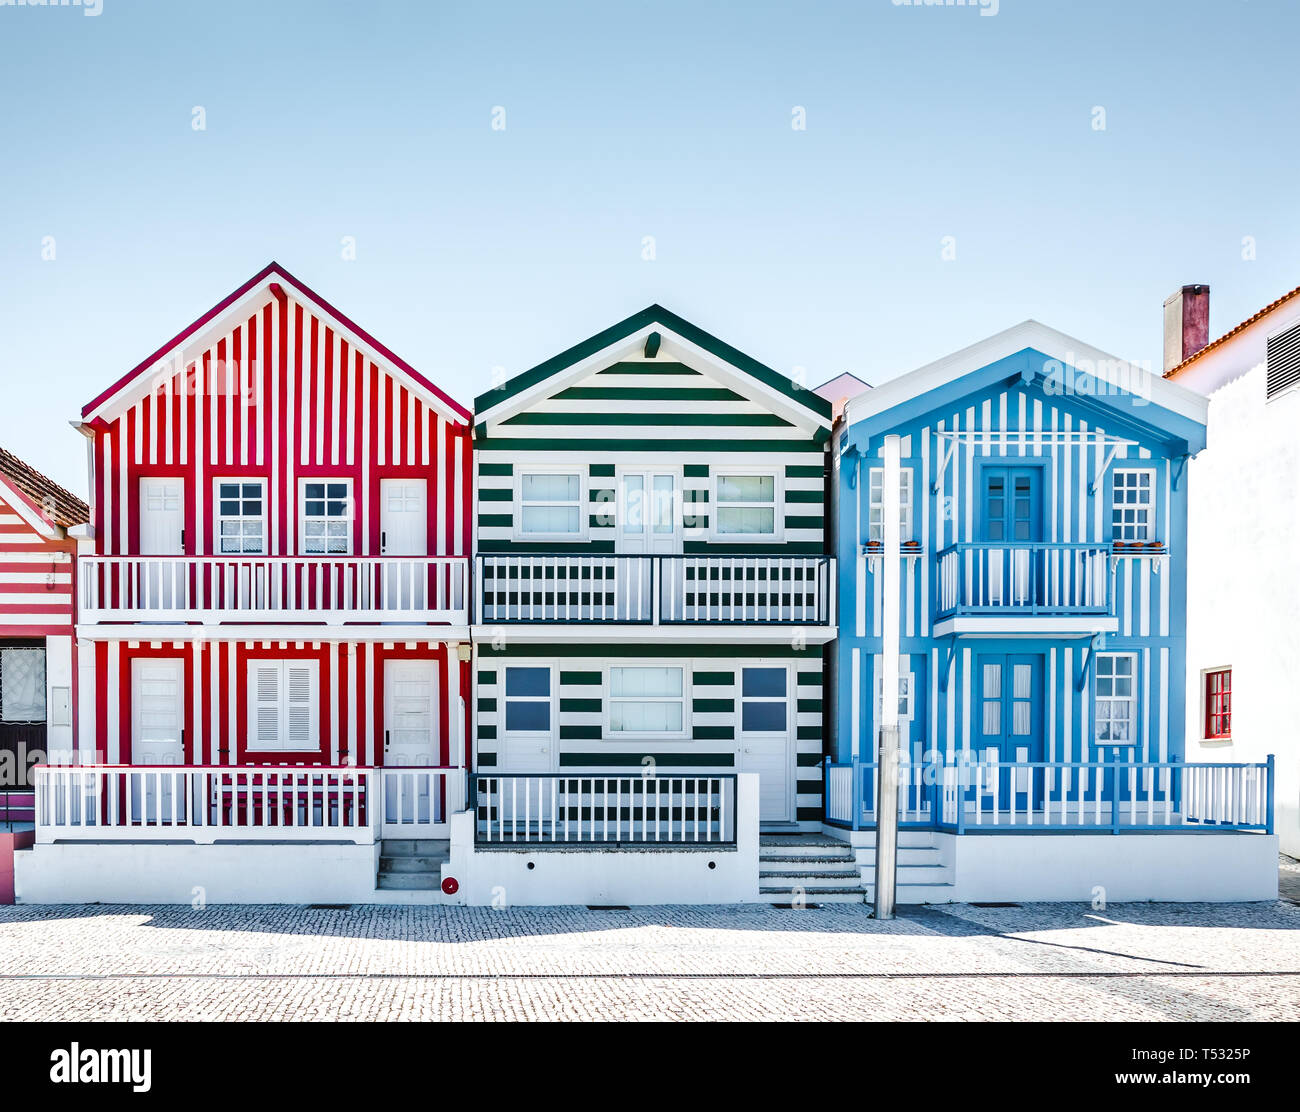 Costa Nova, Portugal: colorful striped houses called Palheiros with red, blue and green stripes. Costa Nova do Prado is a beach village resort on Atla Stock Photo